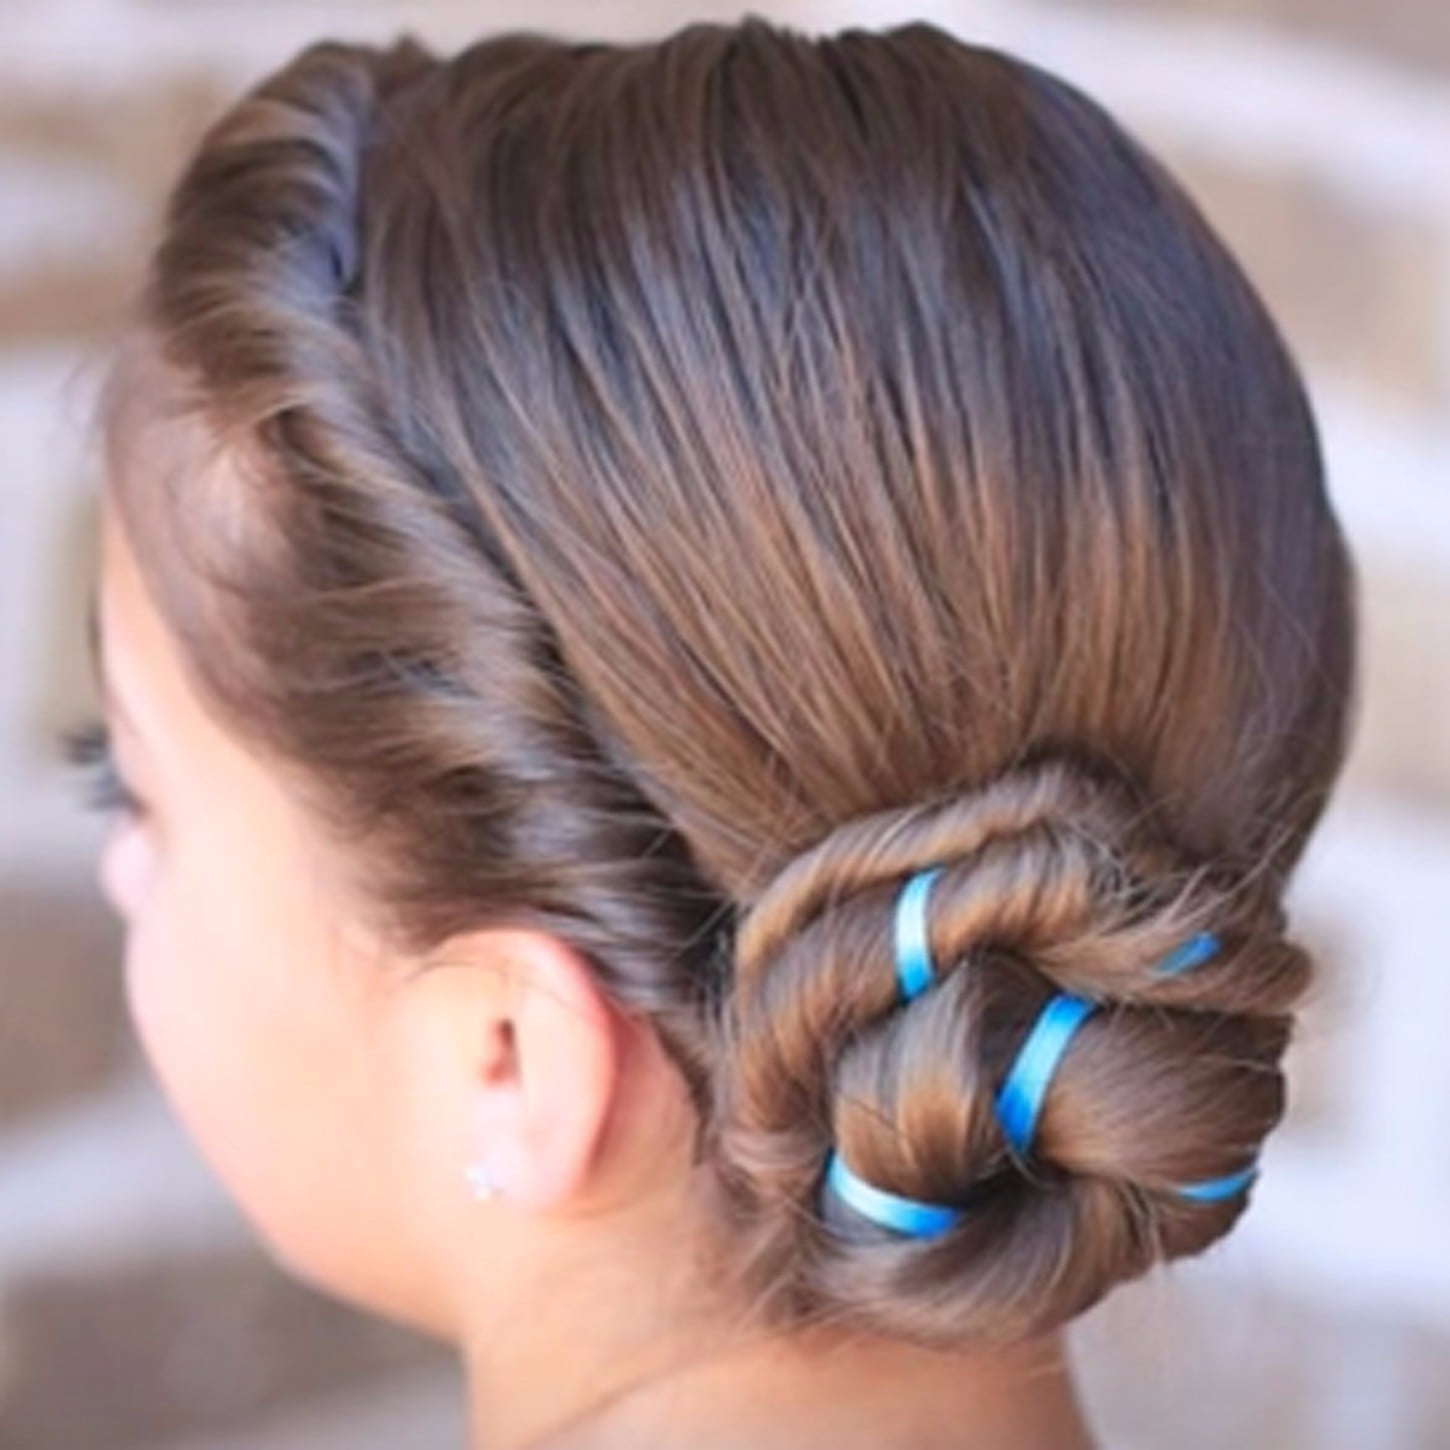 How To Do Your Hair Like Anna And Elsa From Frozen Popsugar Moms